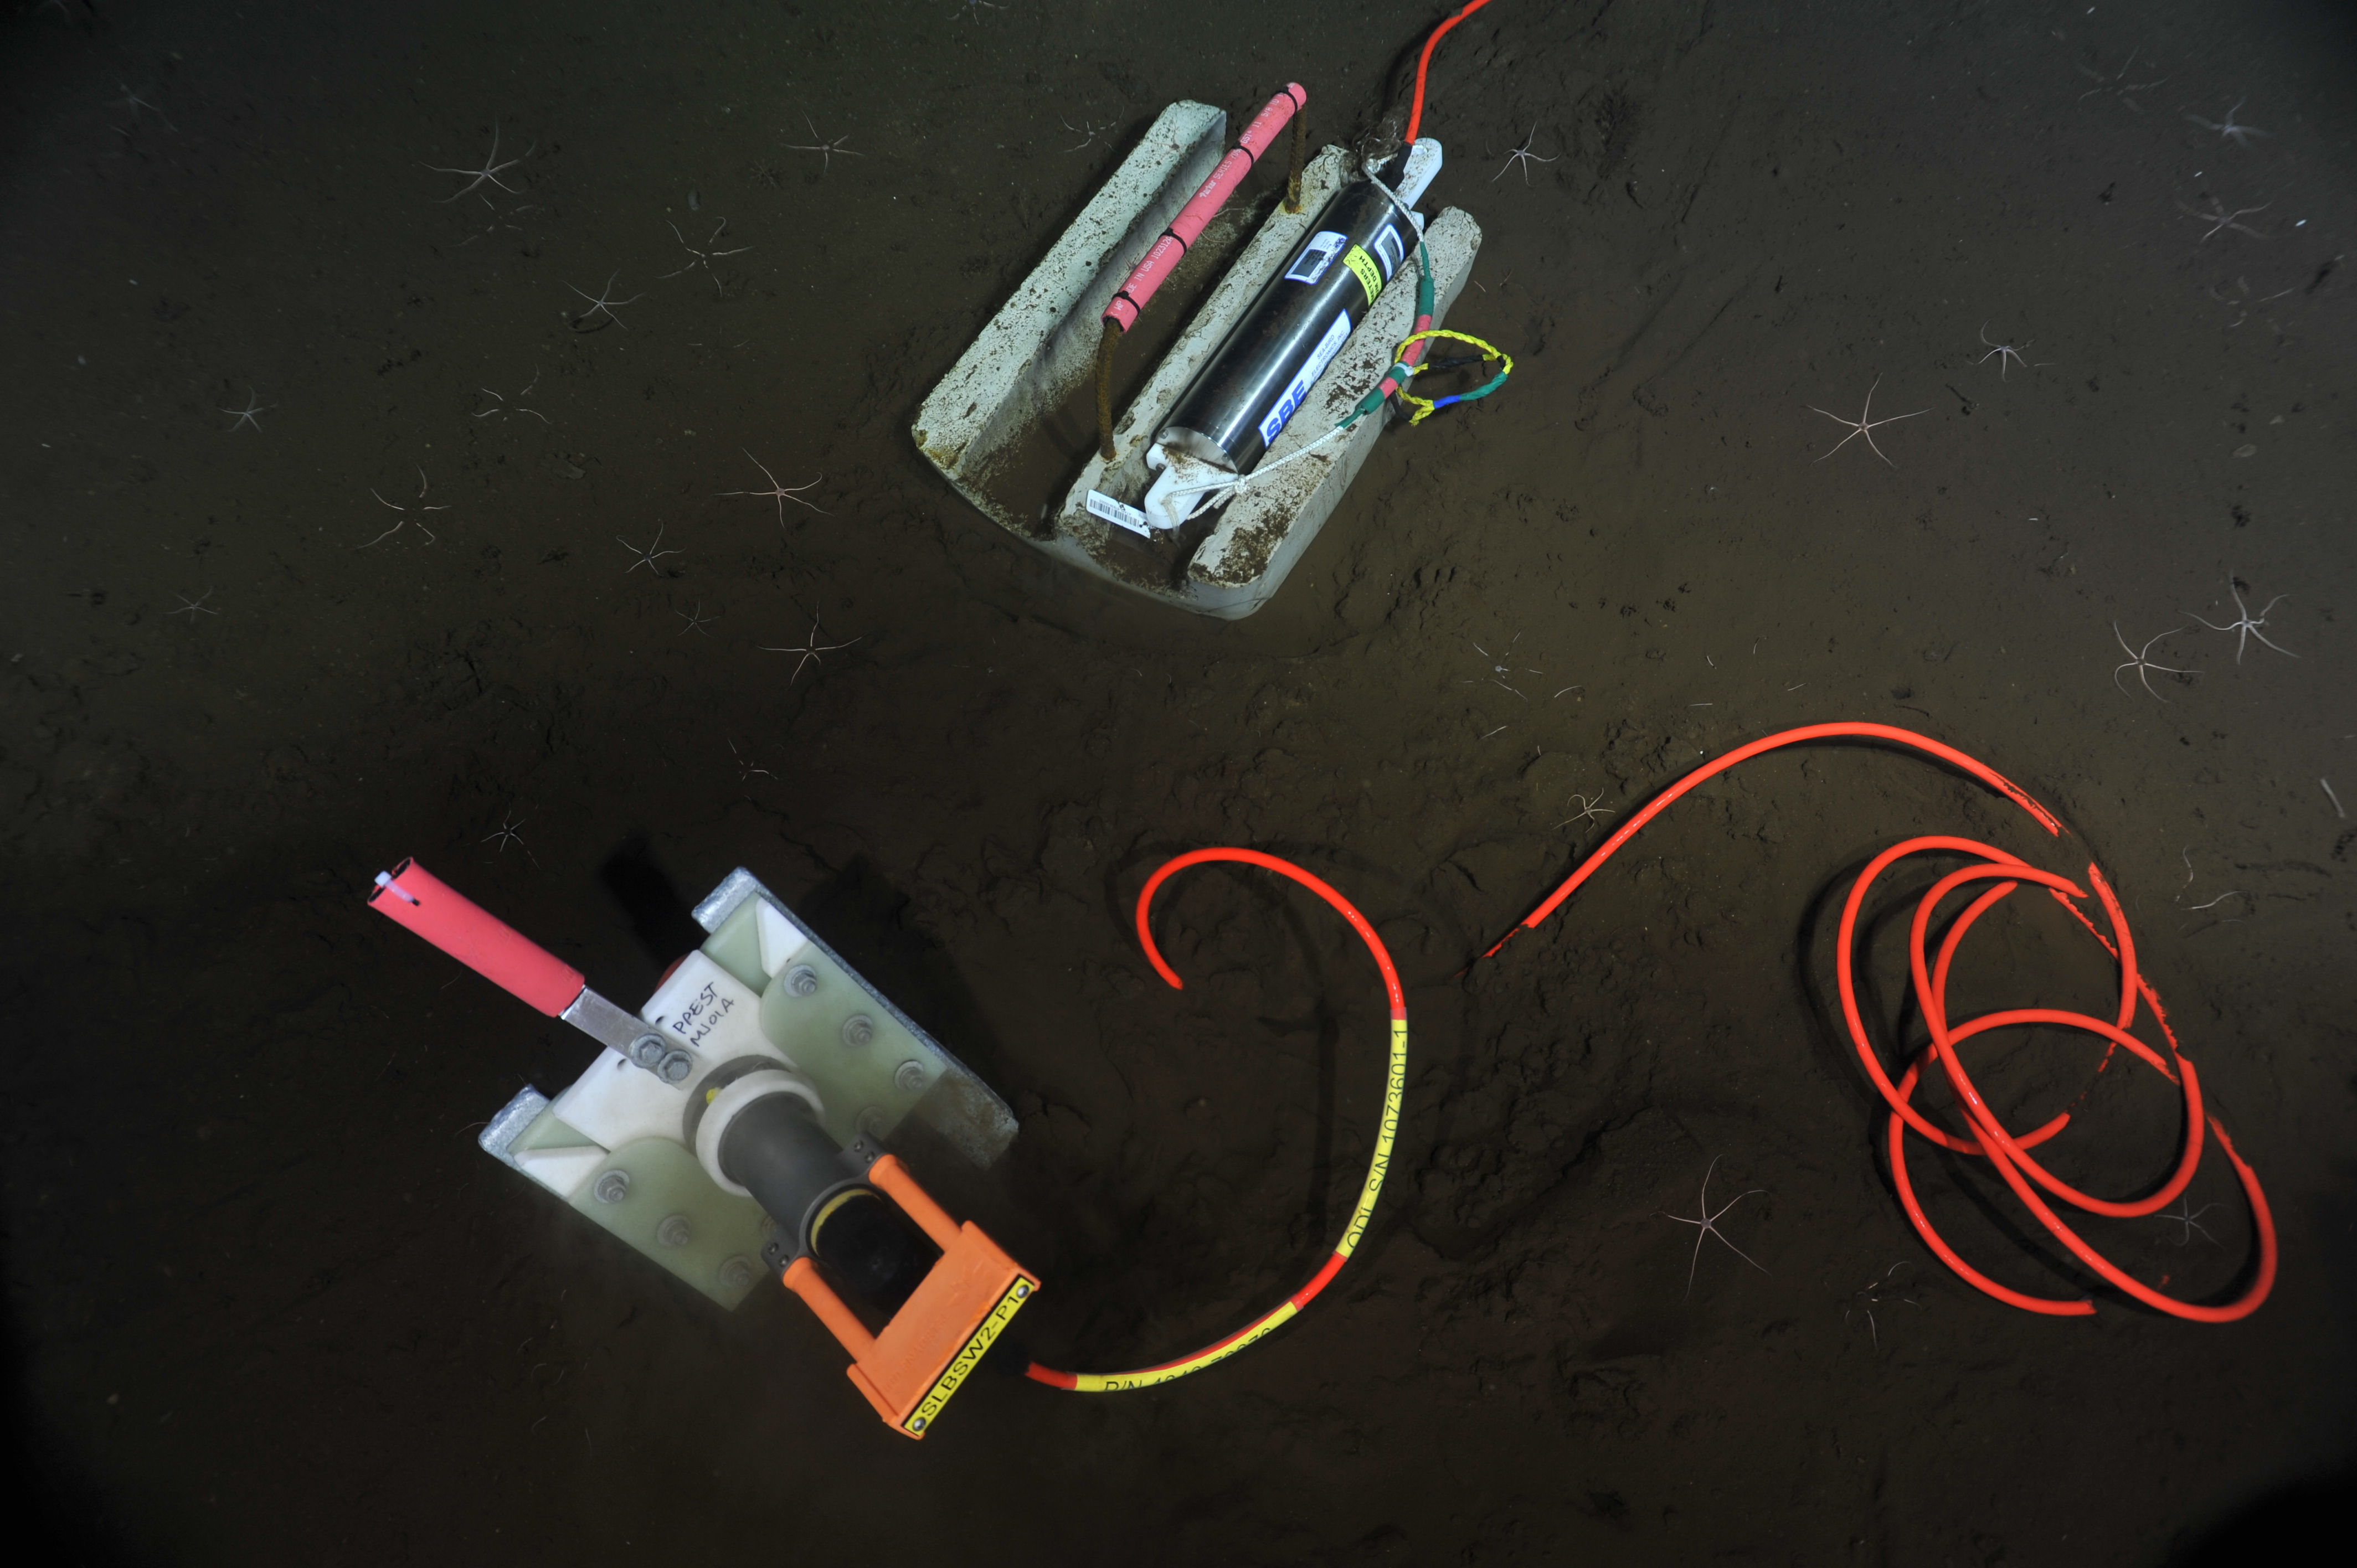 A pressure sensor deployed on the seafloor is powered up for the first time through fiber optic cables, sending data live to the ship >8000 feet above.    Photo credit: NSF-OOI/UW/CSSF